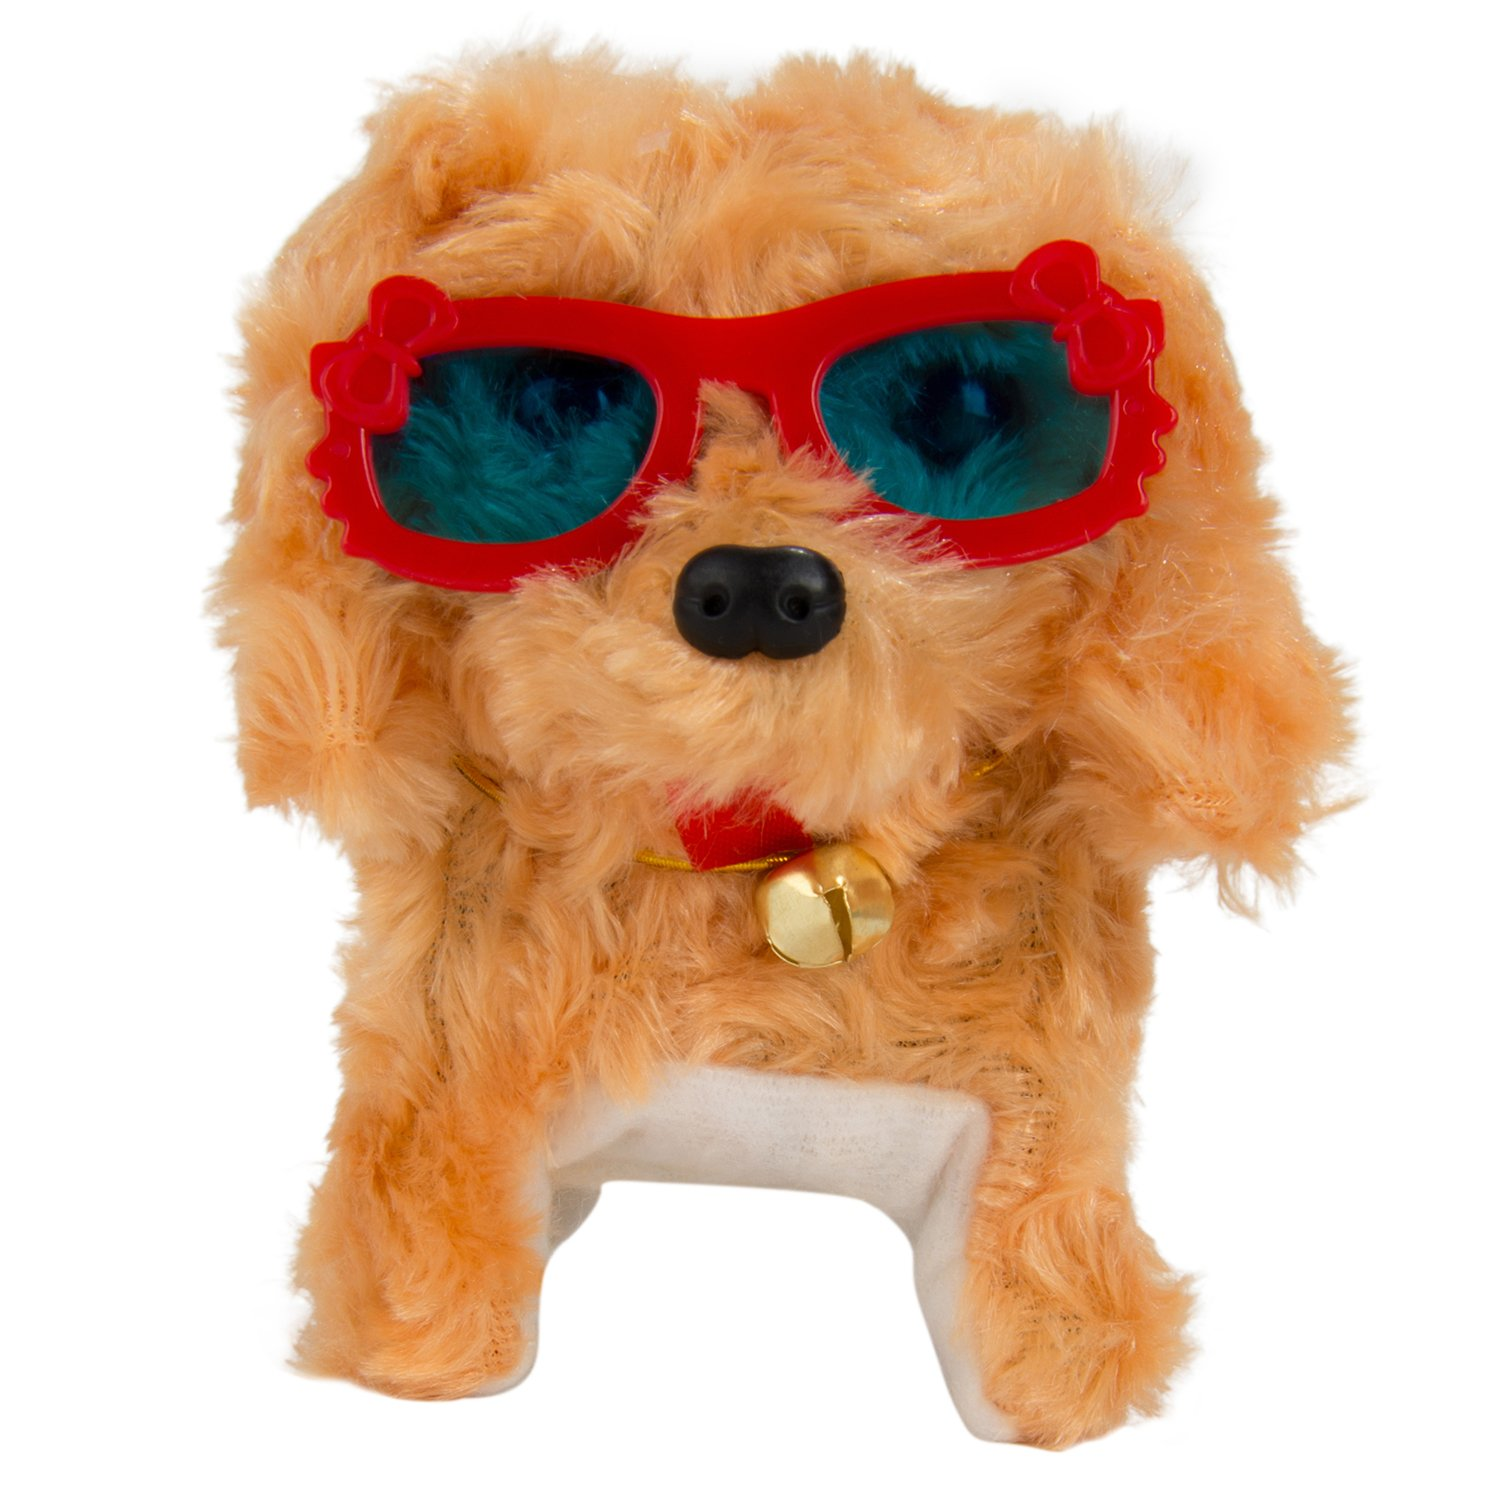 Battery Operated Plush Puppy Toy Dog Walking Barking Tail Wagging Head Nodding Electronic Stuffed Cute Animal Toy for Kids ( Brown Dog with Random Color Glasses )